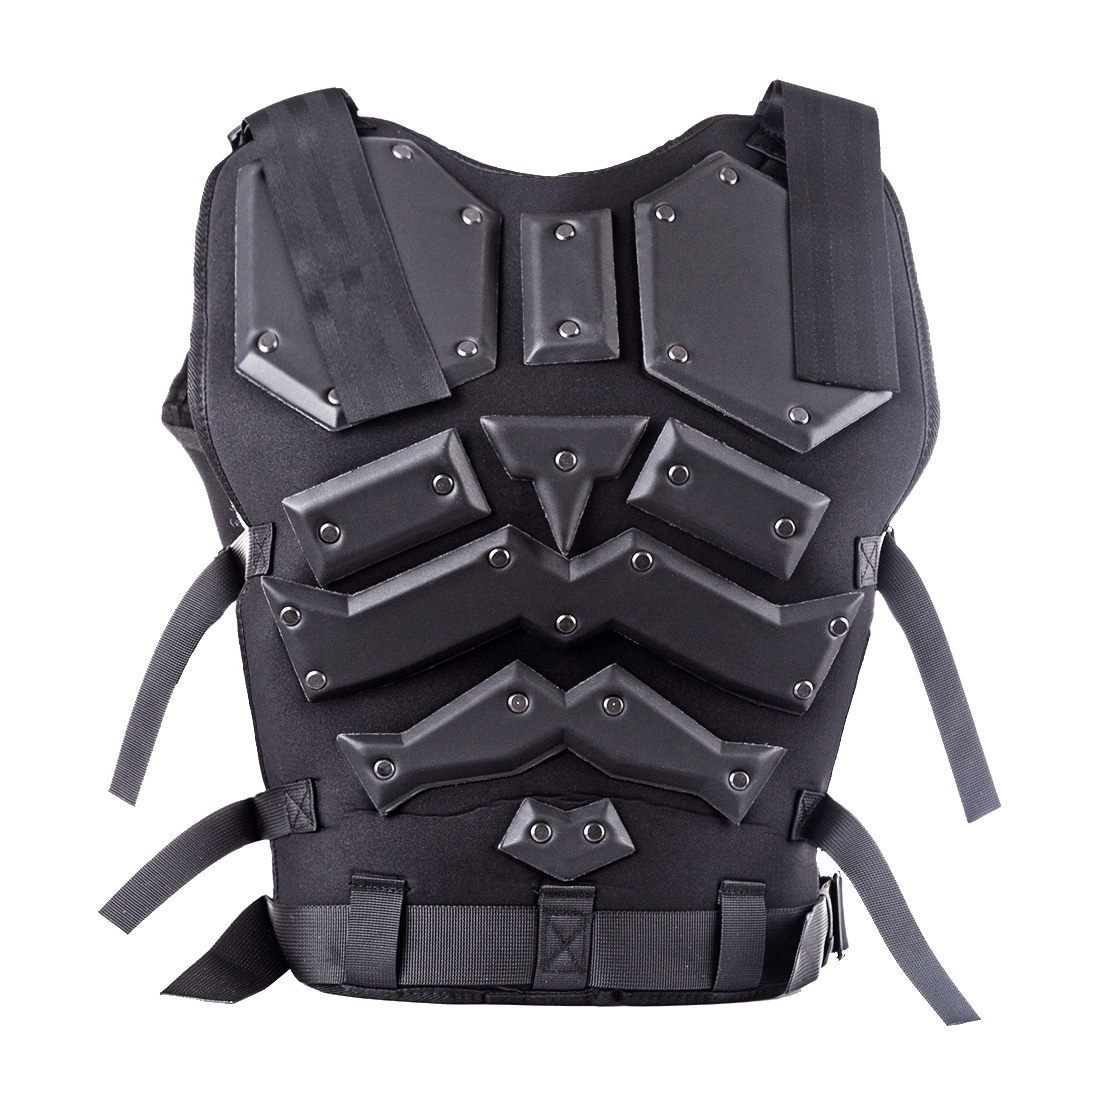 WST Kong Kim Military Tactical Vest 600D Nylon Airsoft Paintball Vest - Black